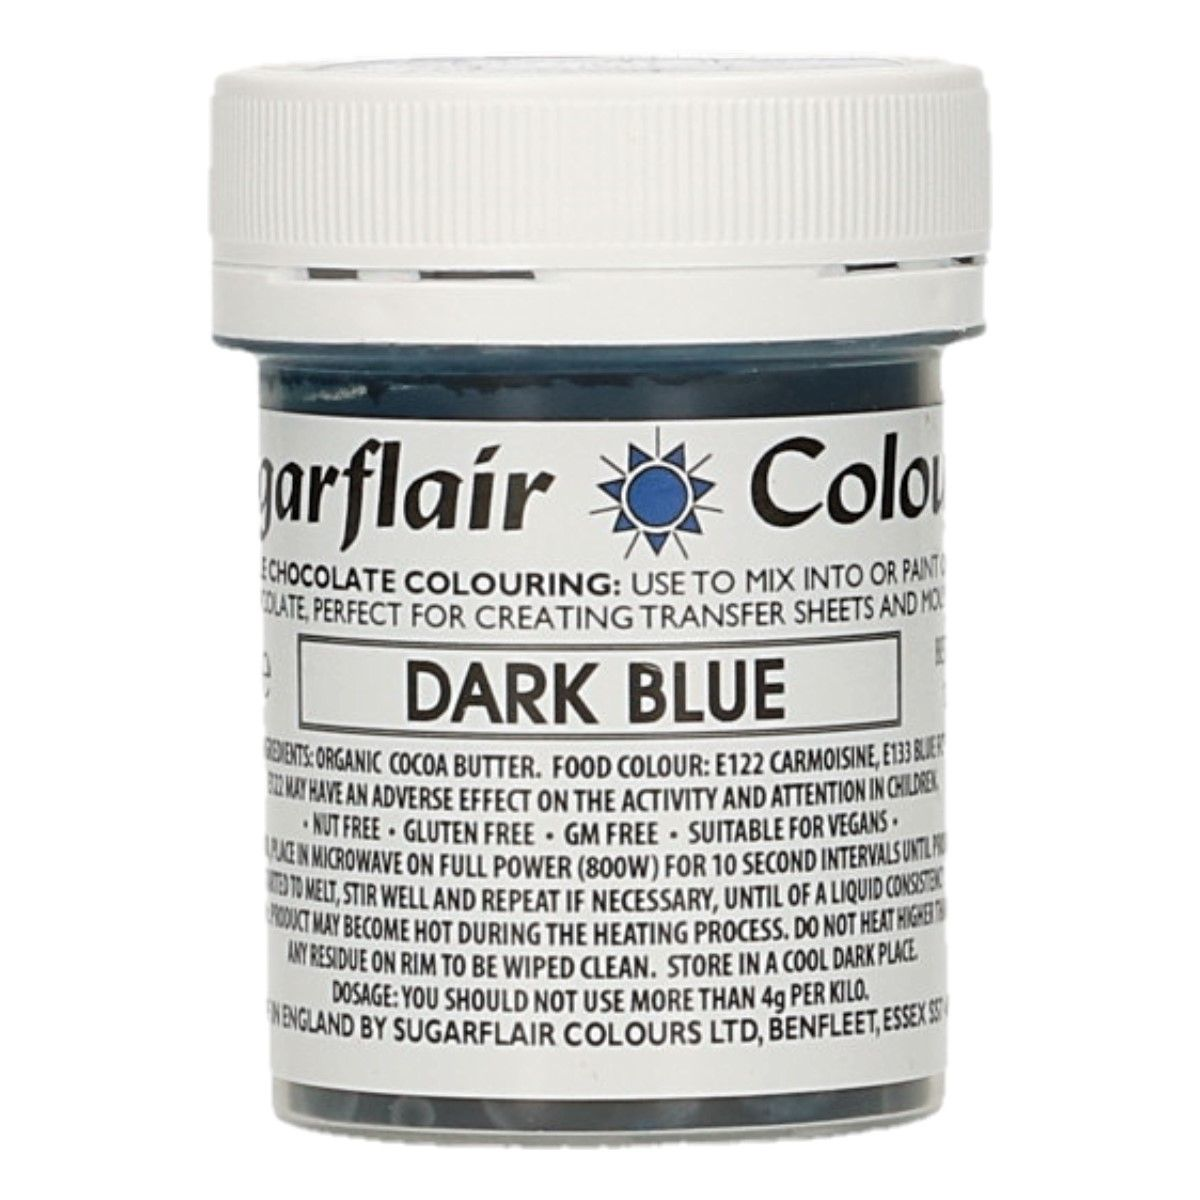 Sugarflair Chocolate Colour Dark Blue 35g